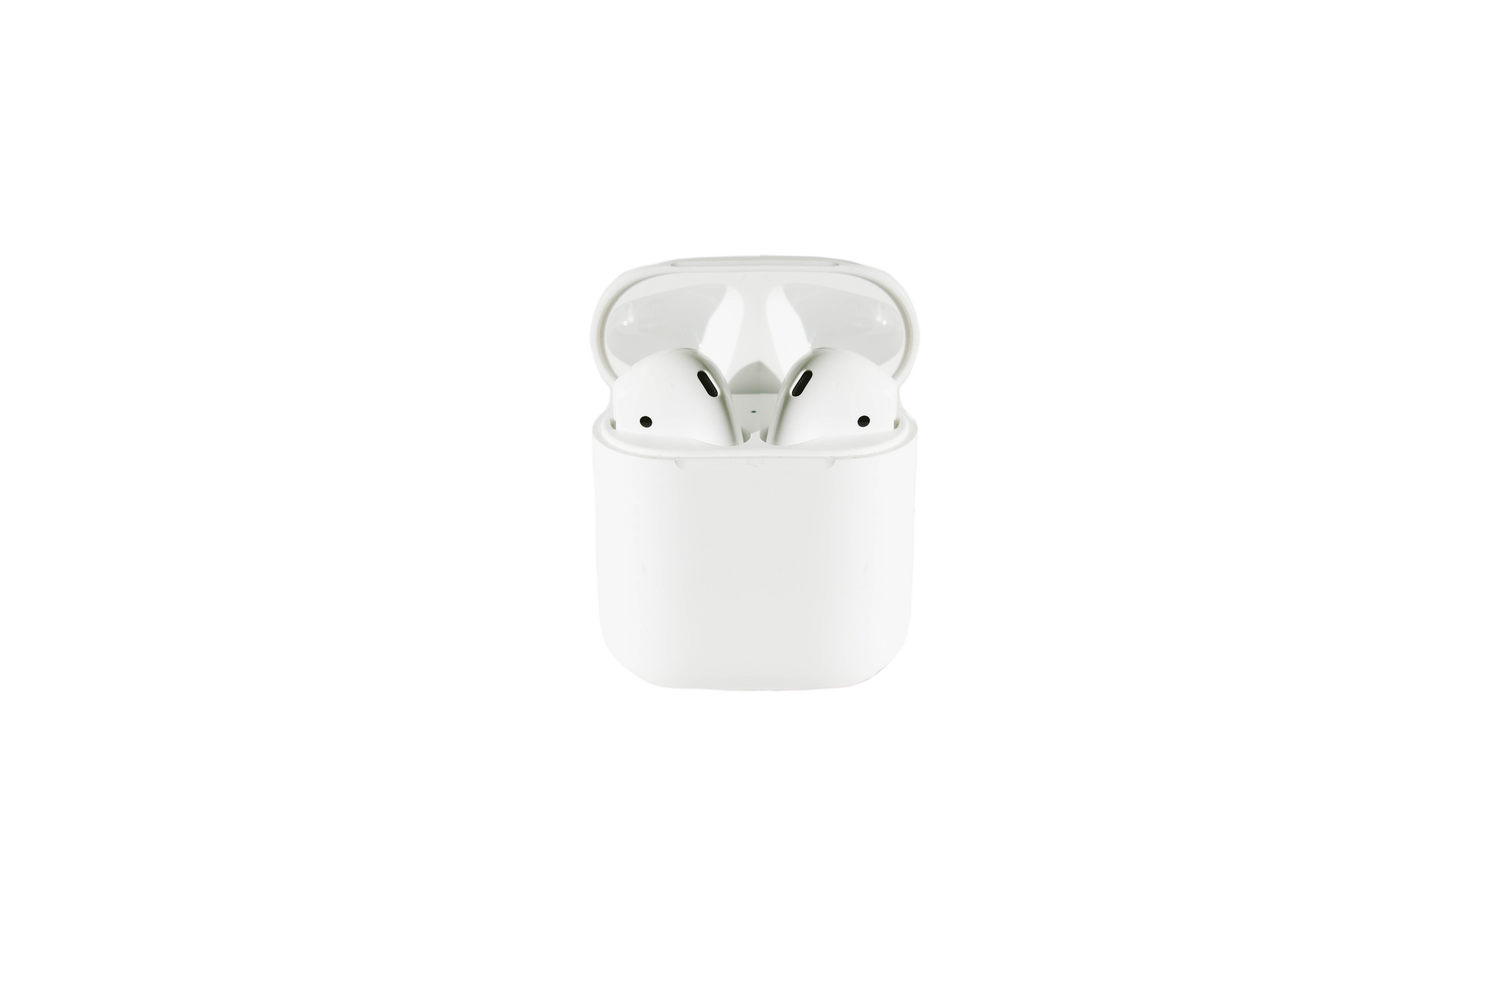 Airpod with the charging case transparent background PNG